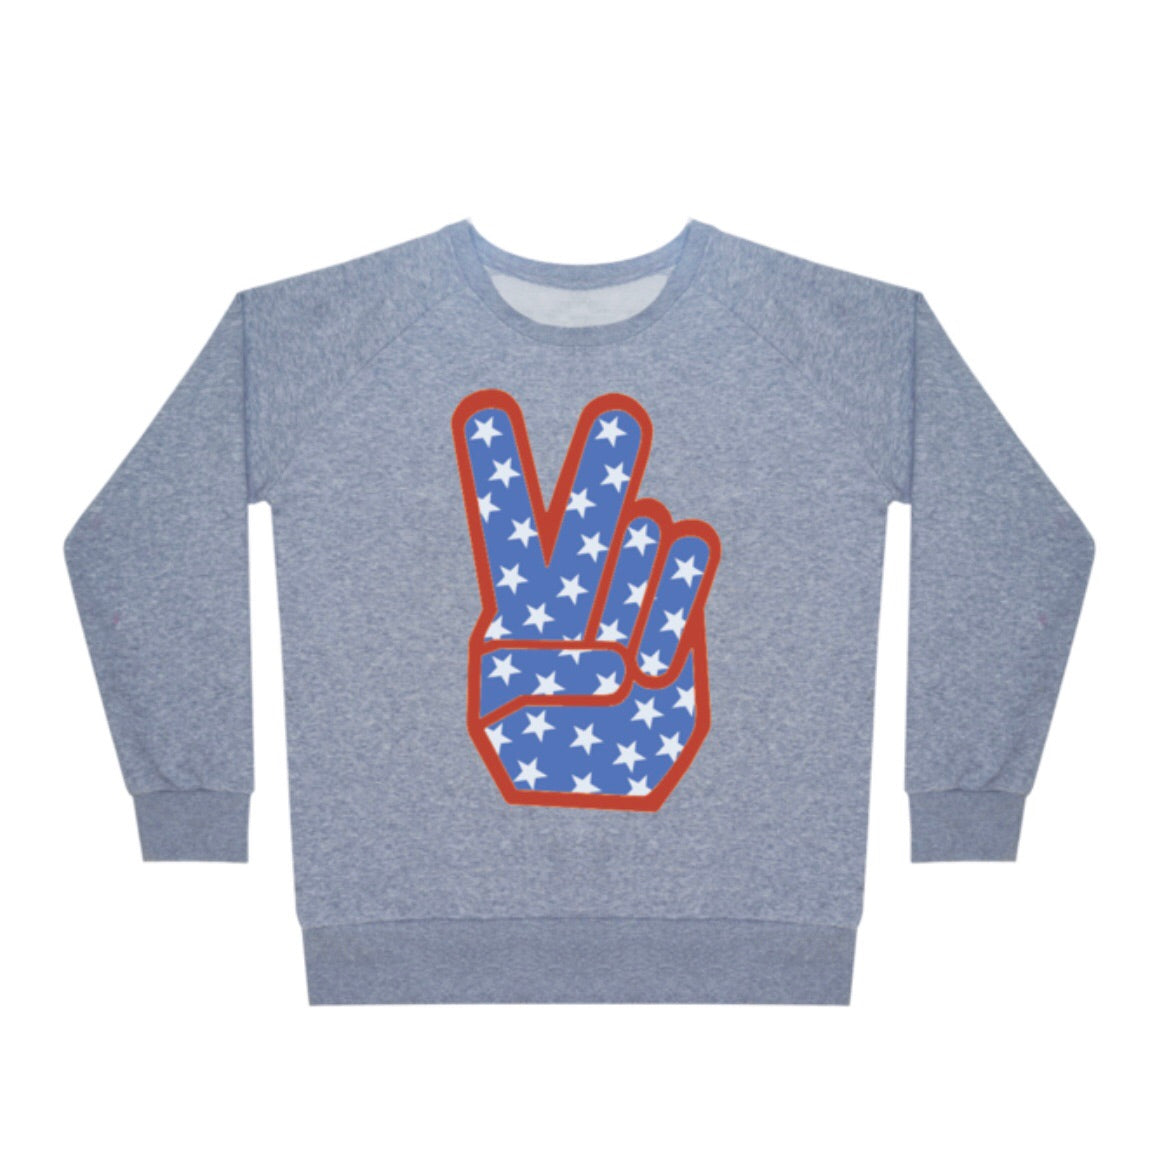 Sweat Peace Grey Marl